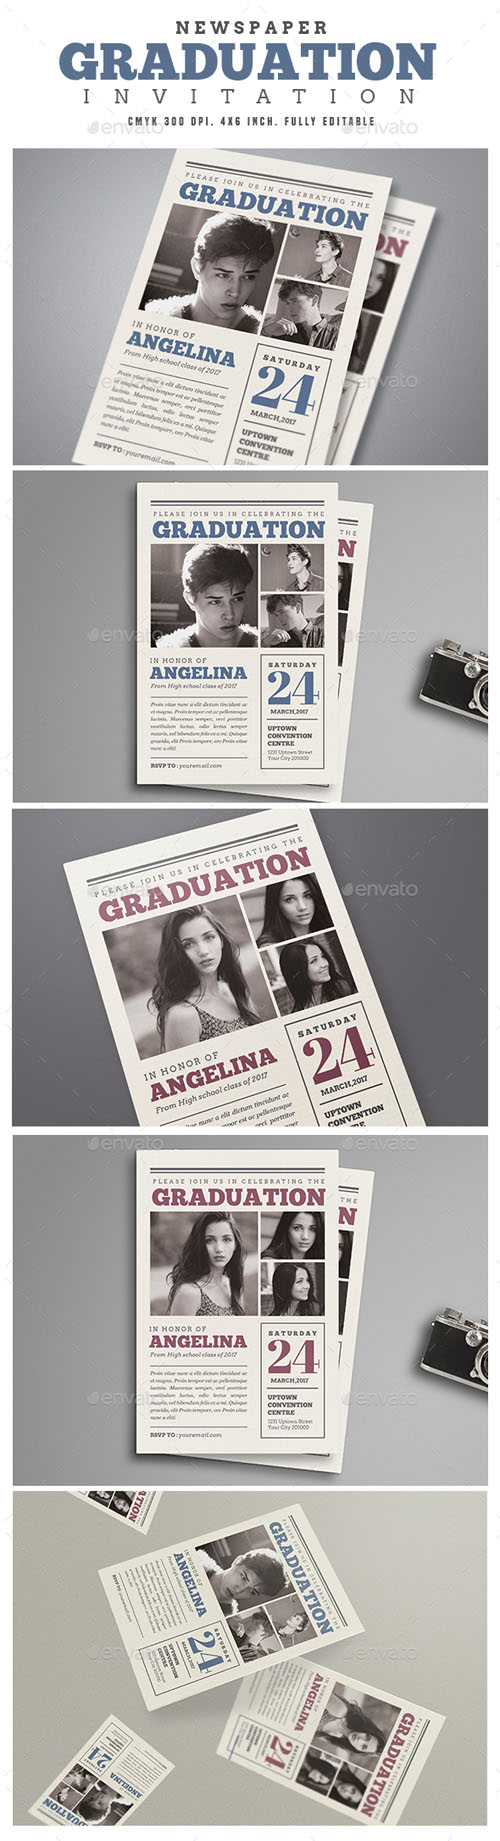 Newspaper Graduation invitation 15819158